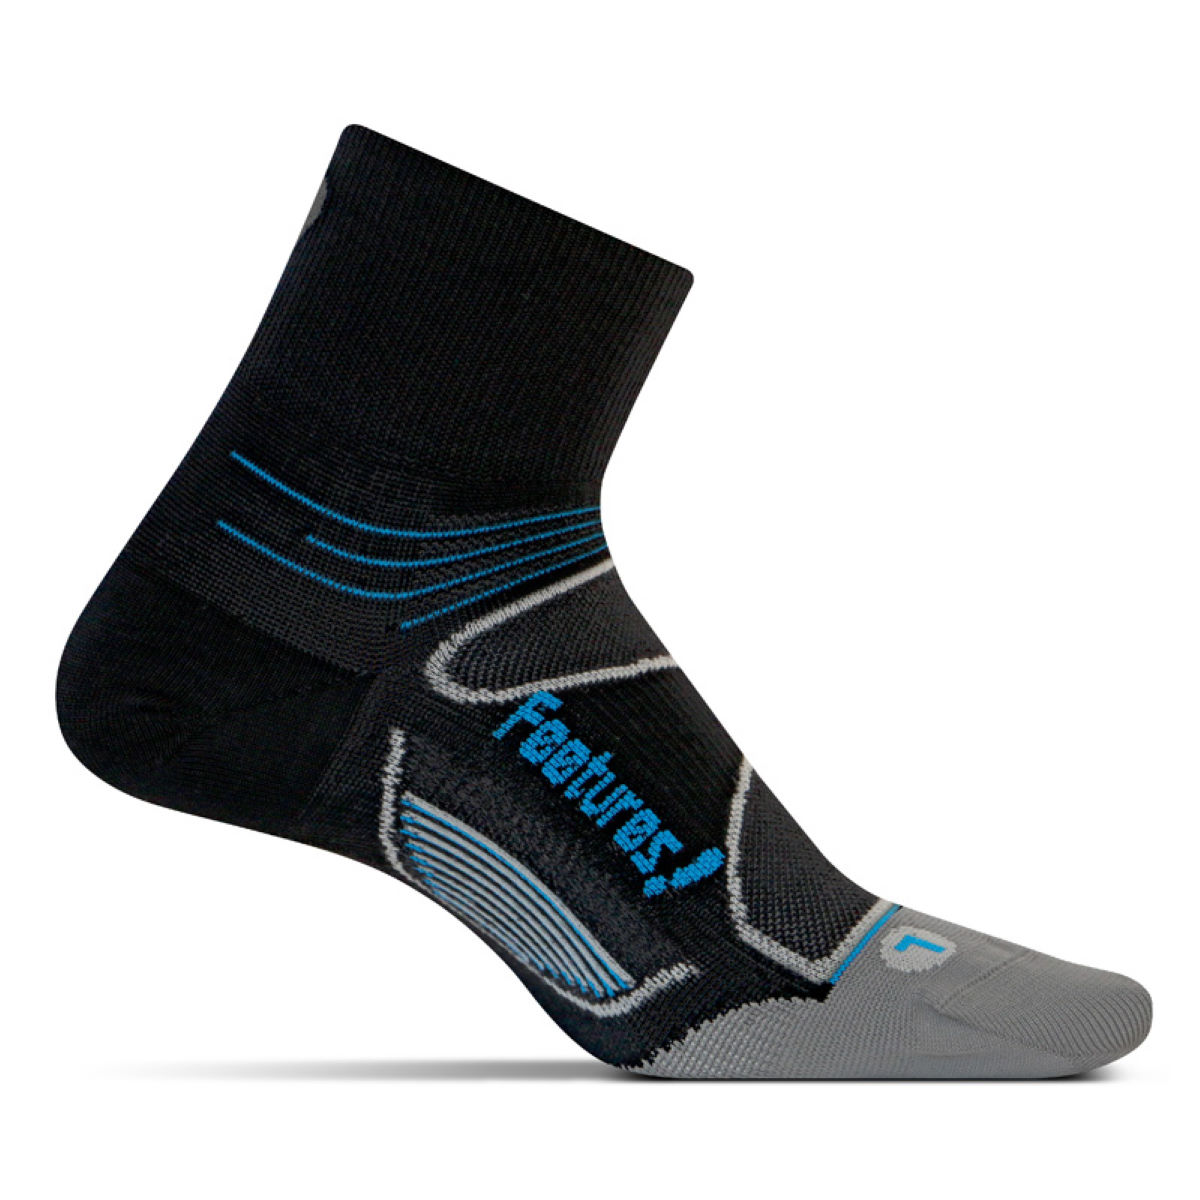 Chaussettes Feetures! Elite Ultra Light Quarter - L Black/Brill Blue